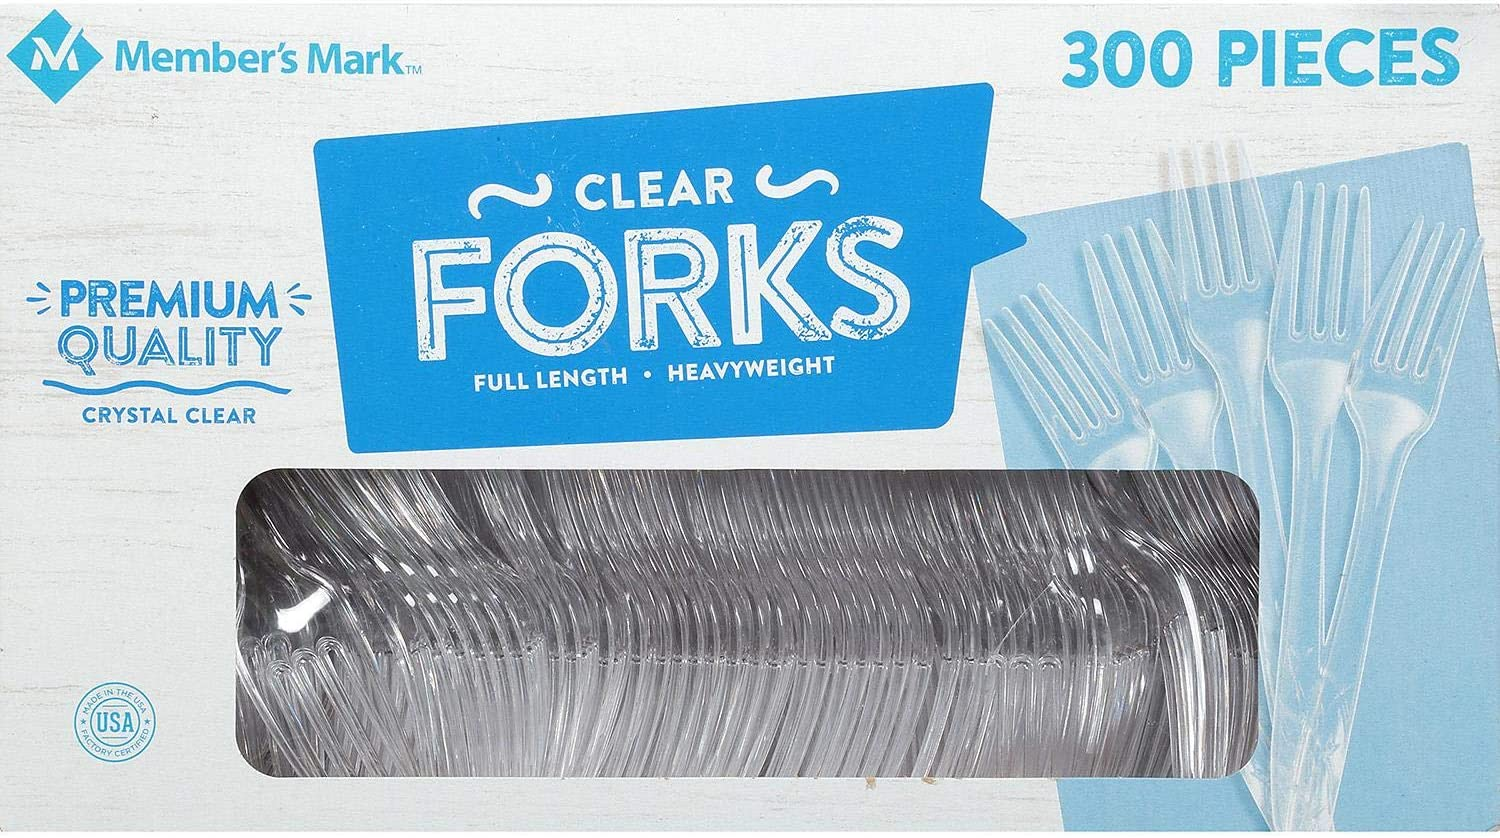 Daily Chef Clear Plastic Forks, Heavyweight, 300 Count